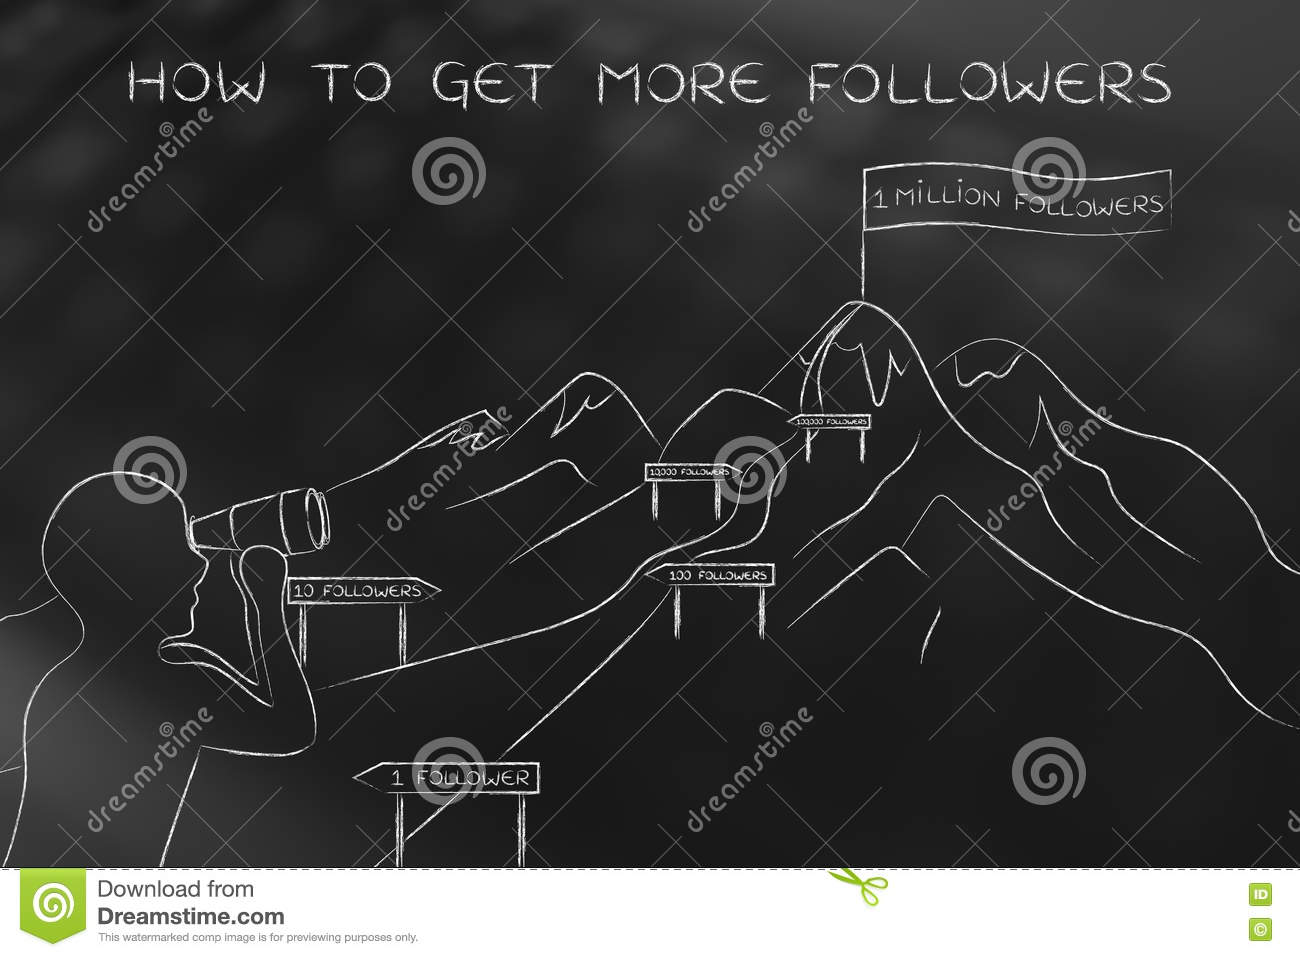 How To Get More Followers, Man Looking At Intricate Path To